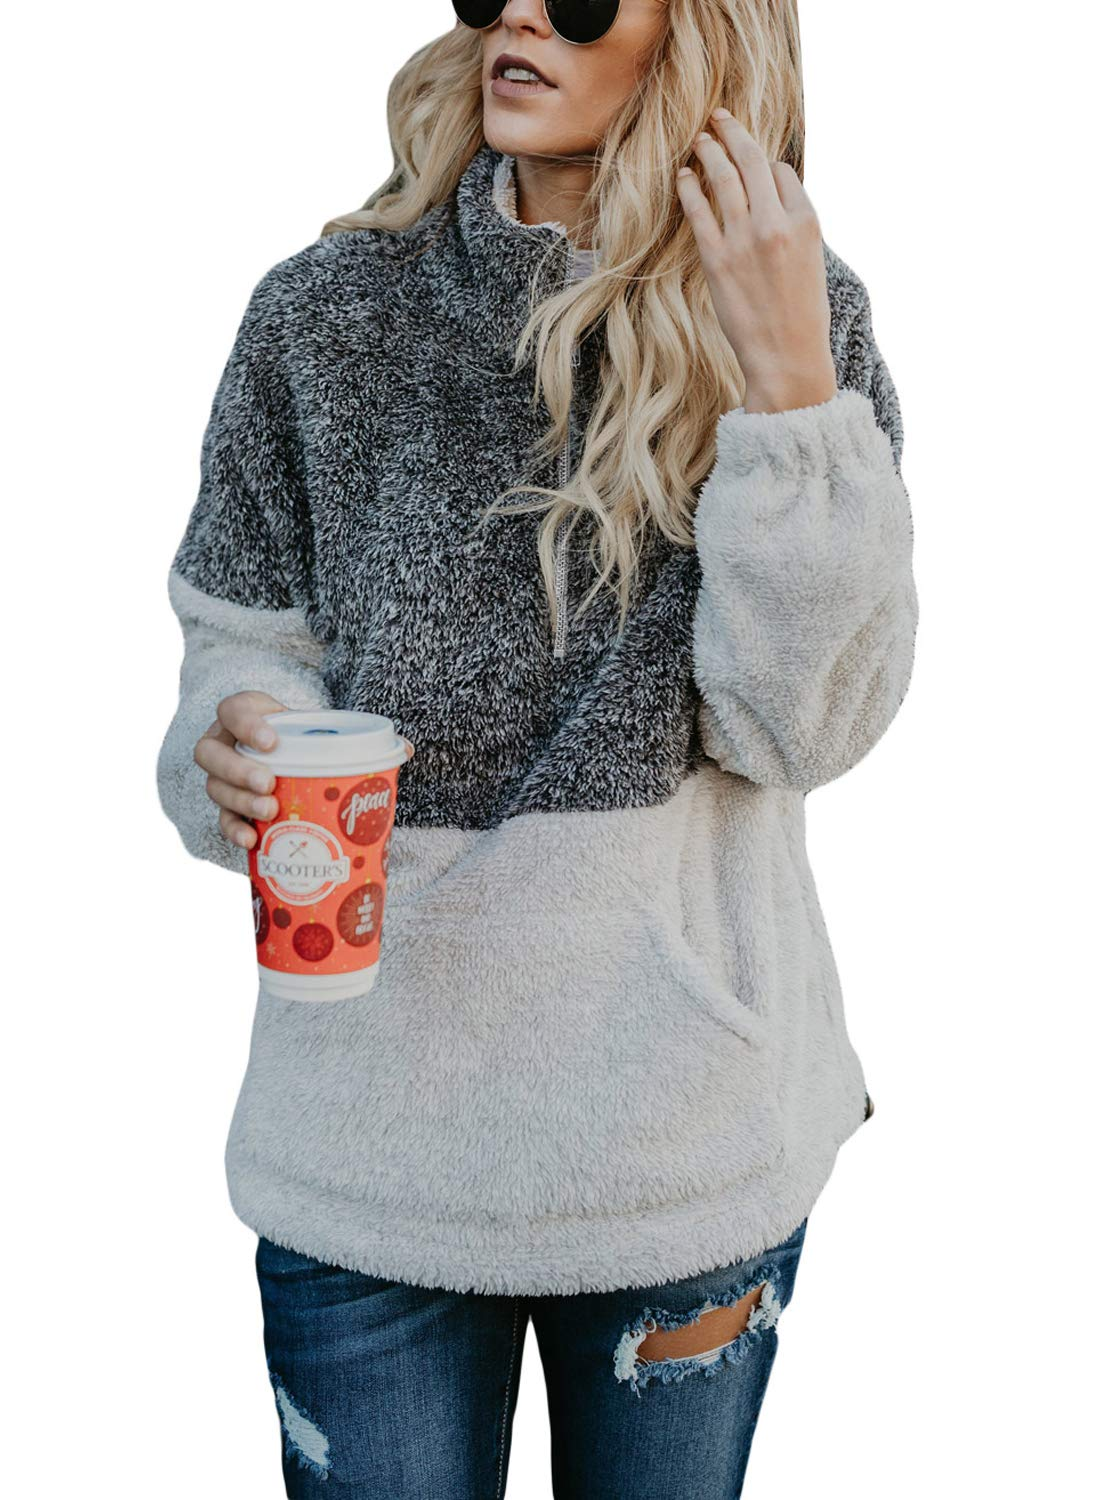 Dokotoo Womens Hoodies Cozy Loose Casual Winter Oversized Soft Fluffy Fleece Sweatshirt Pullover with Pockets Outwear Grey Small